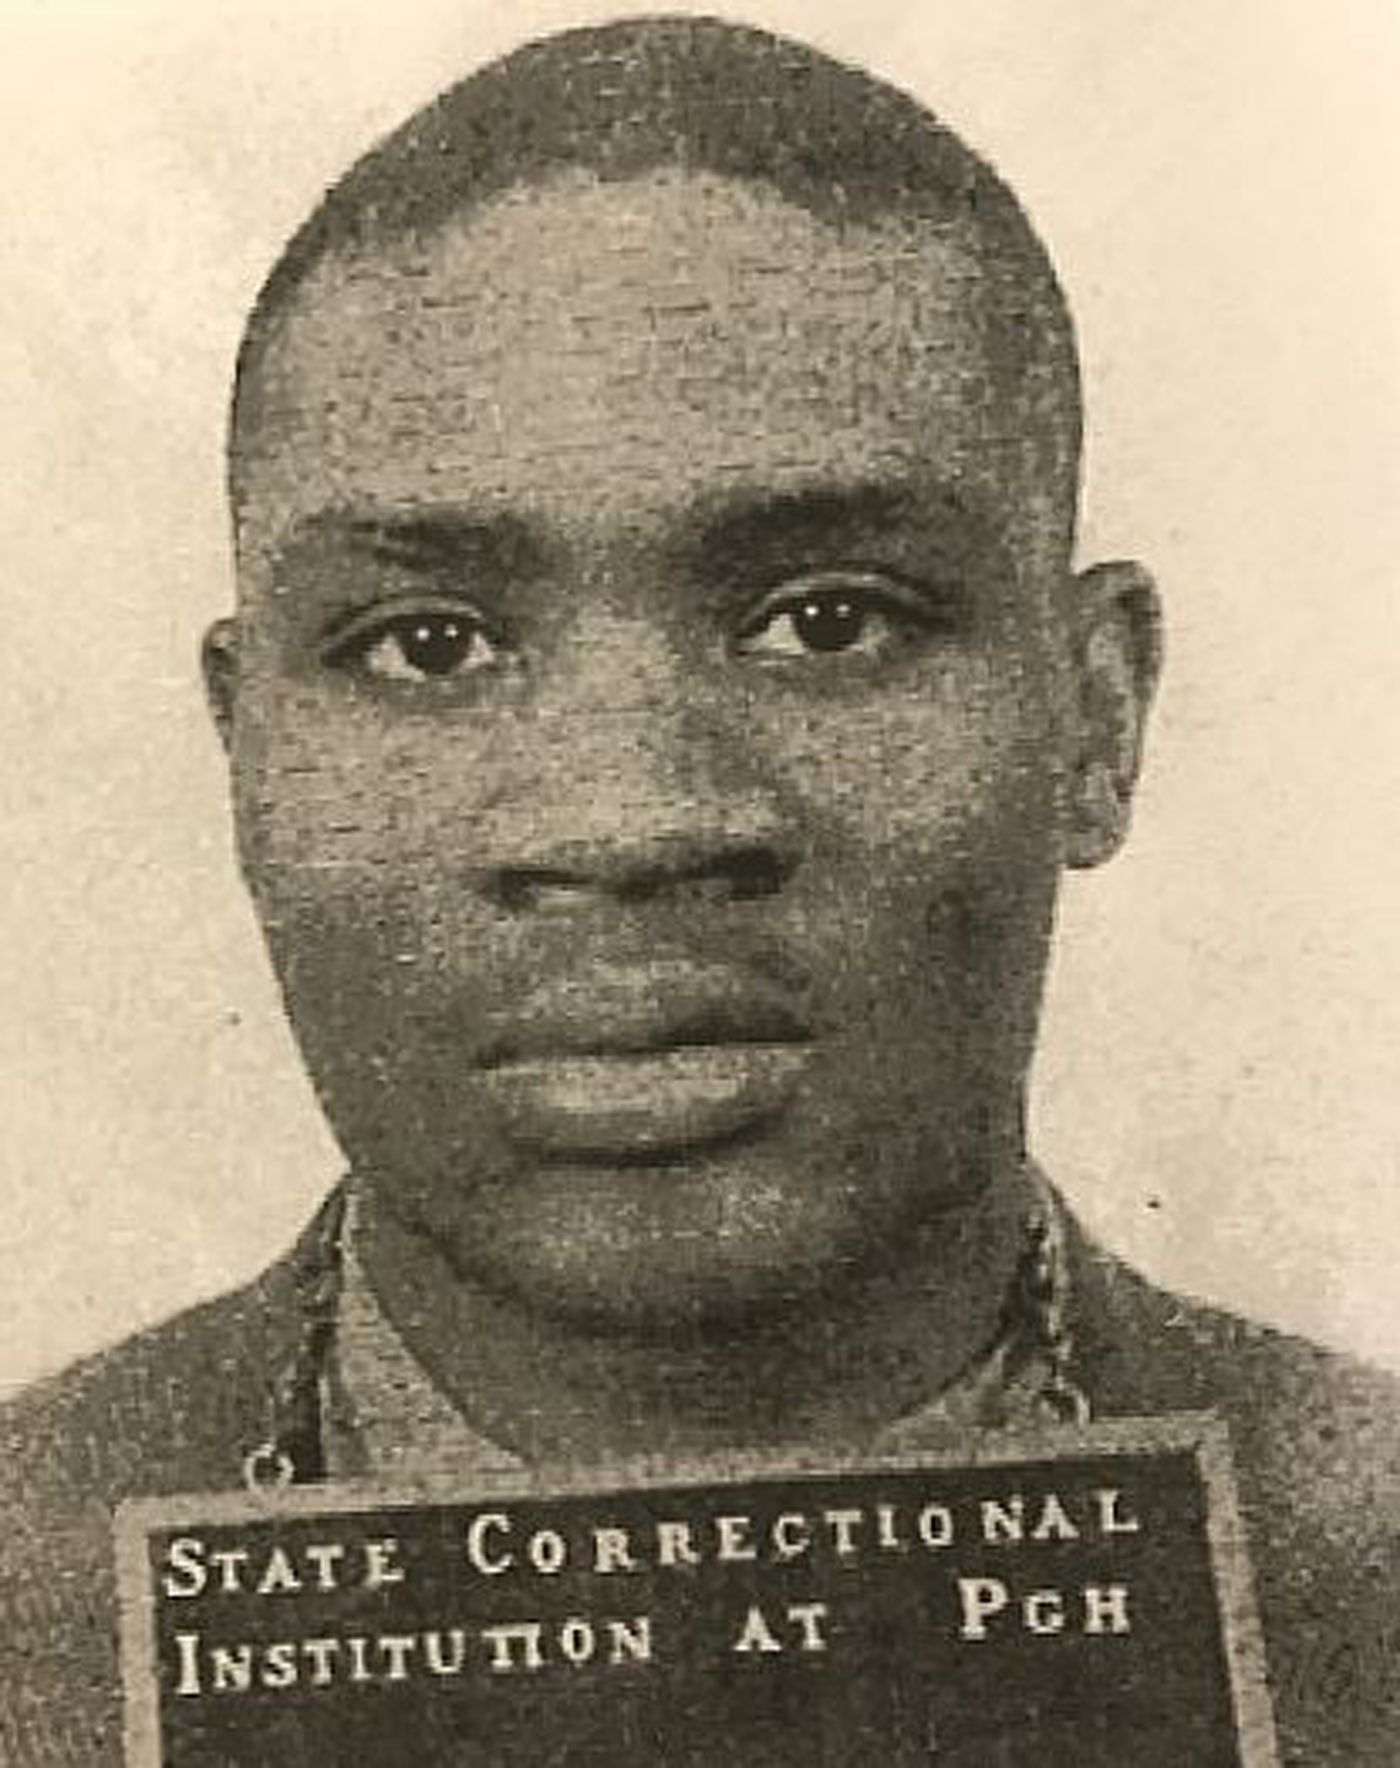 Joseph Ligon is seen in an undated prison photo from State Correctional Institution Pittsburgh.